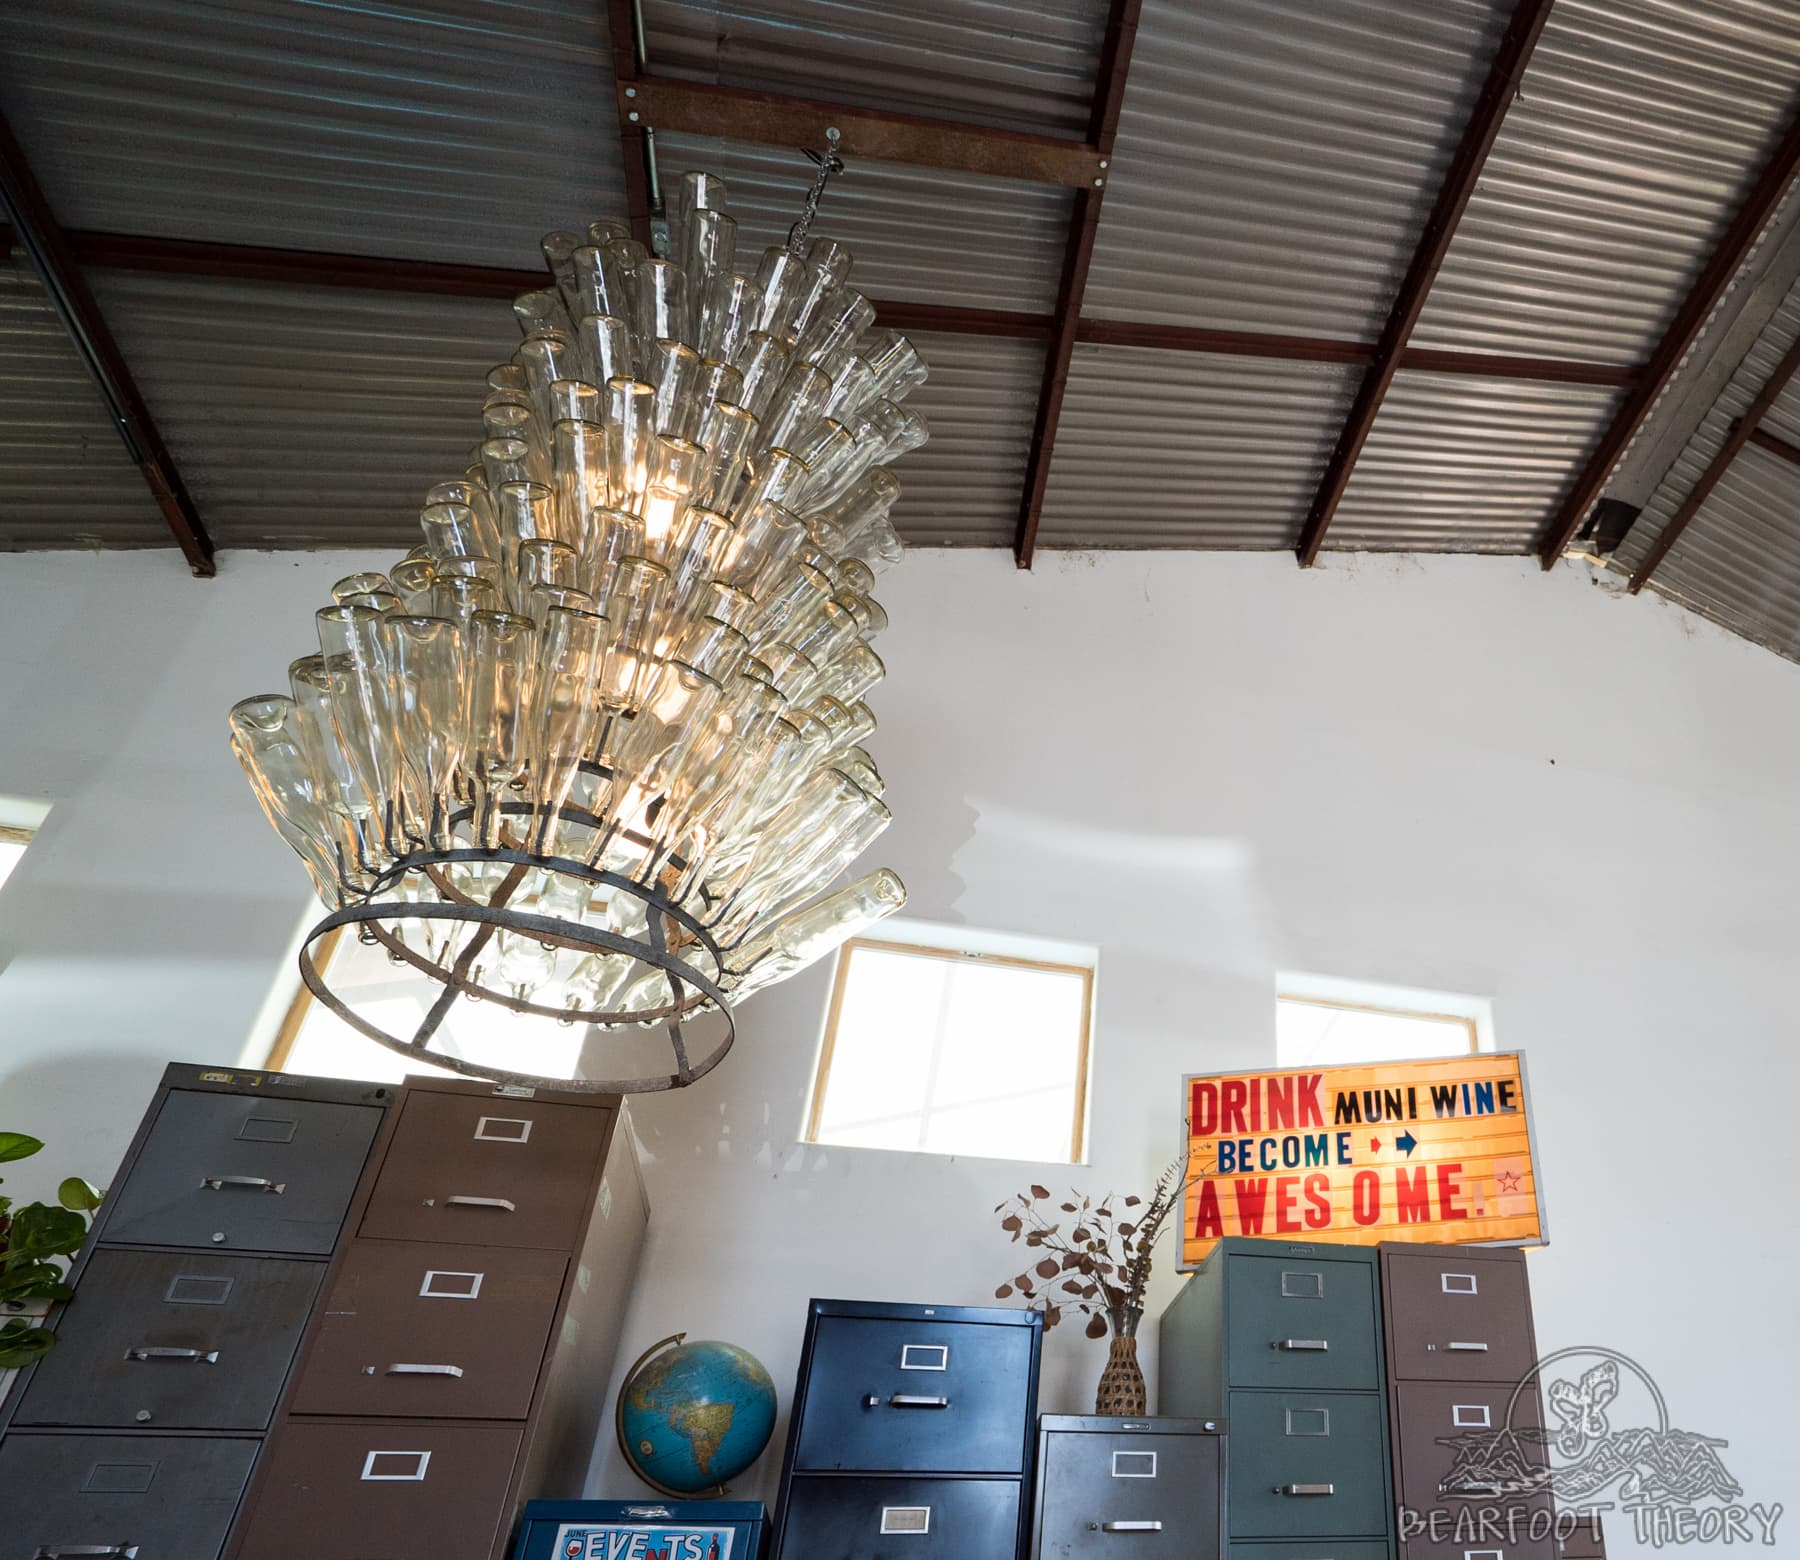 Drink Muni Wine, Become Awesome! - Municipal Winemakers - One of my favorite stops on Santa Barbara's wine trail